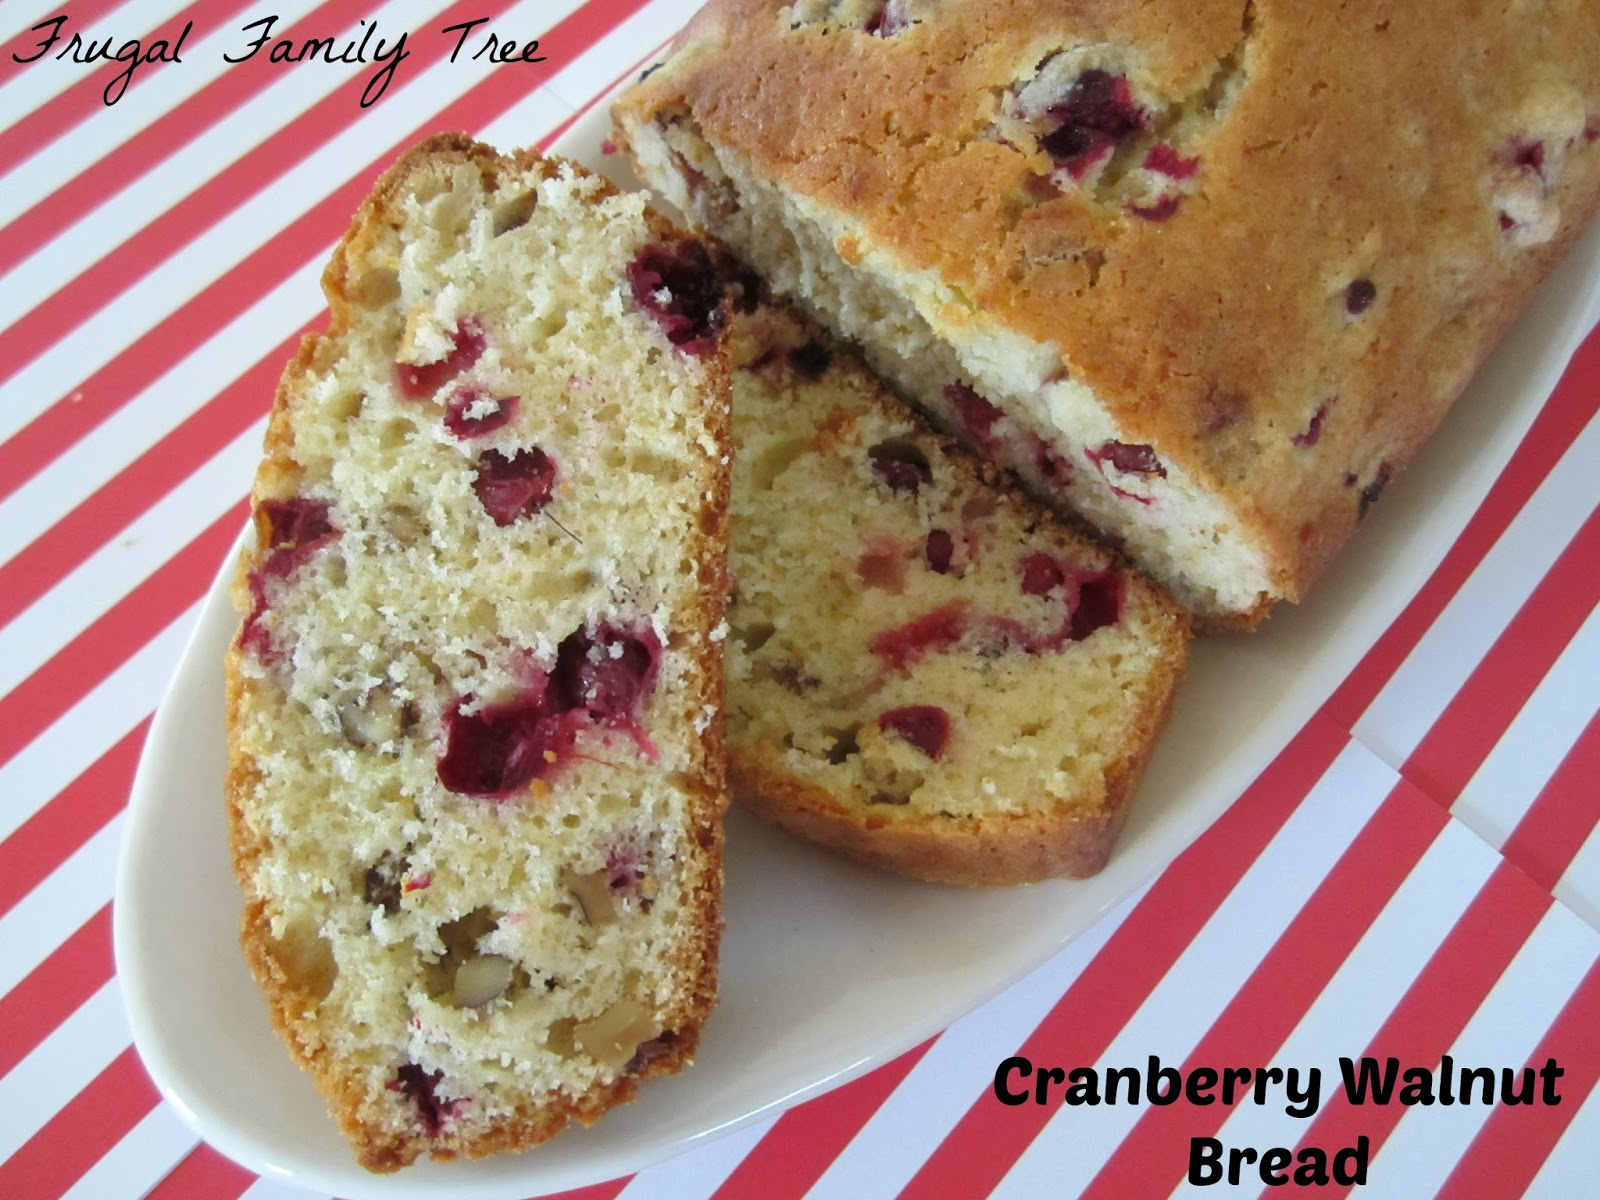 Christmas Cranberry Walnut Bread | Frugal Family Tree